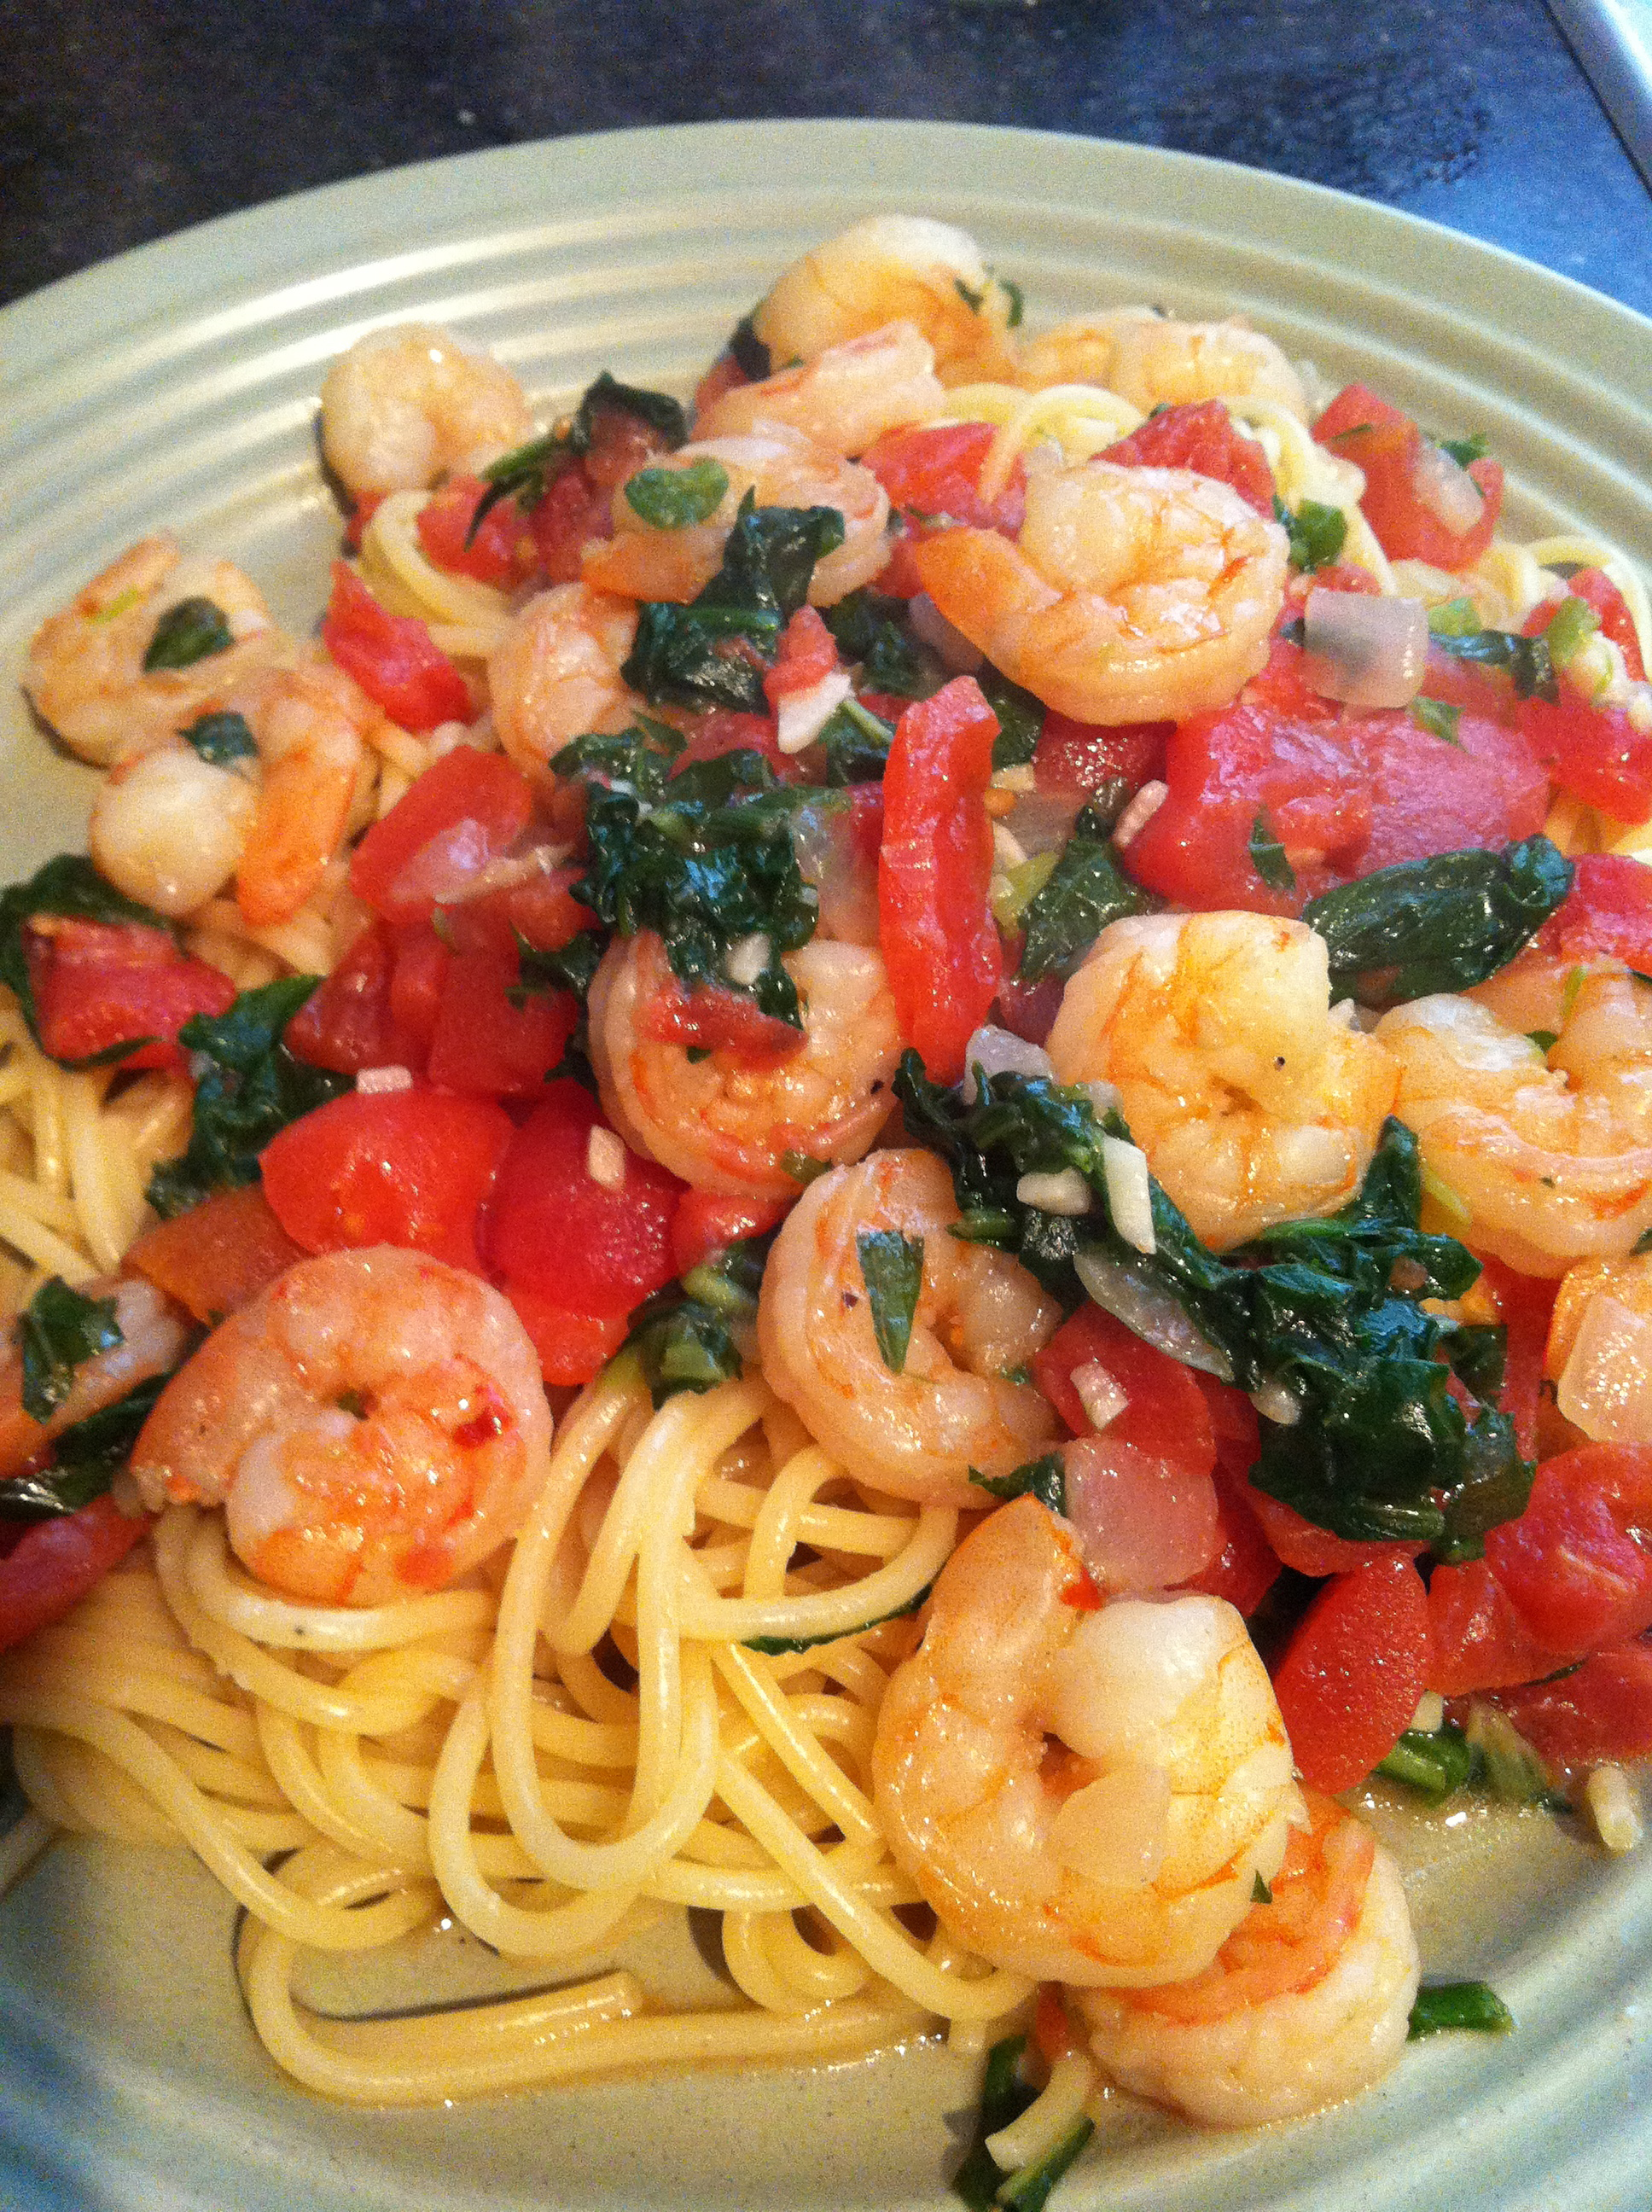 Recipes Course Main Dish Pasta Shrimp pasta with basil and spinach